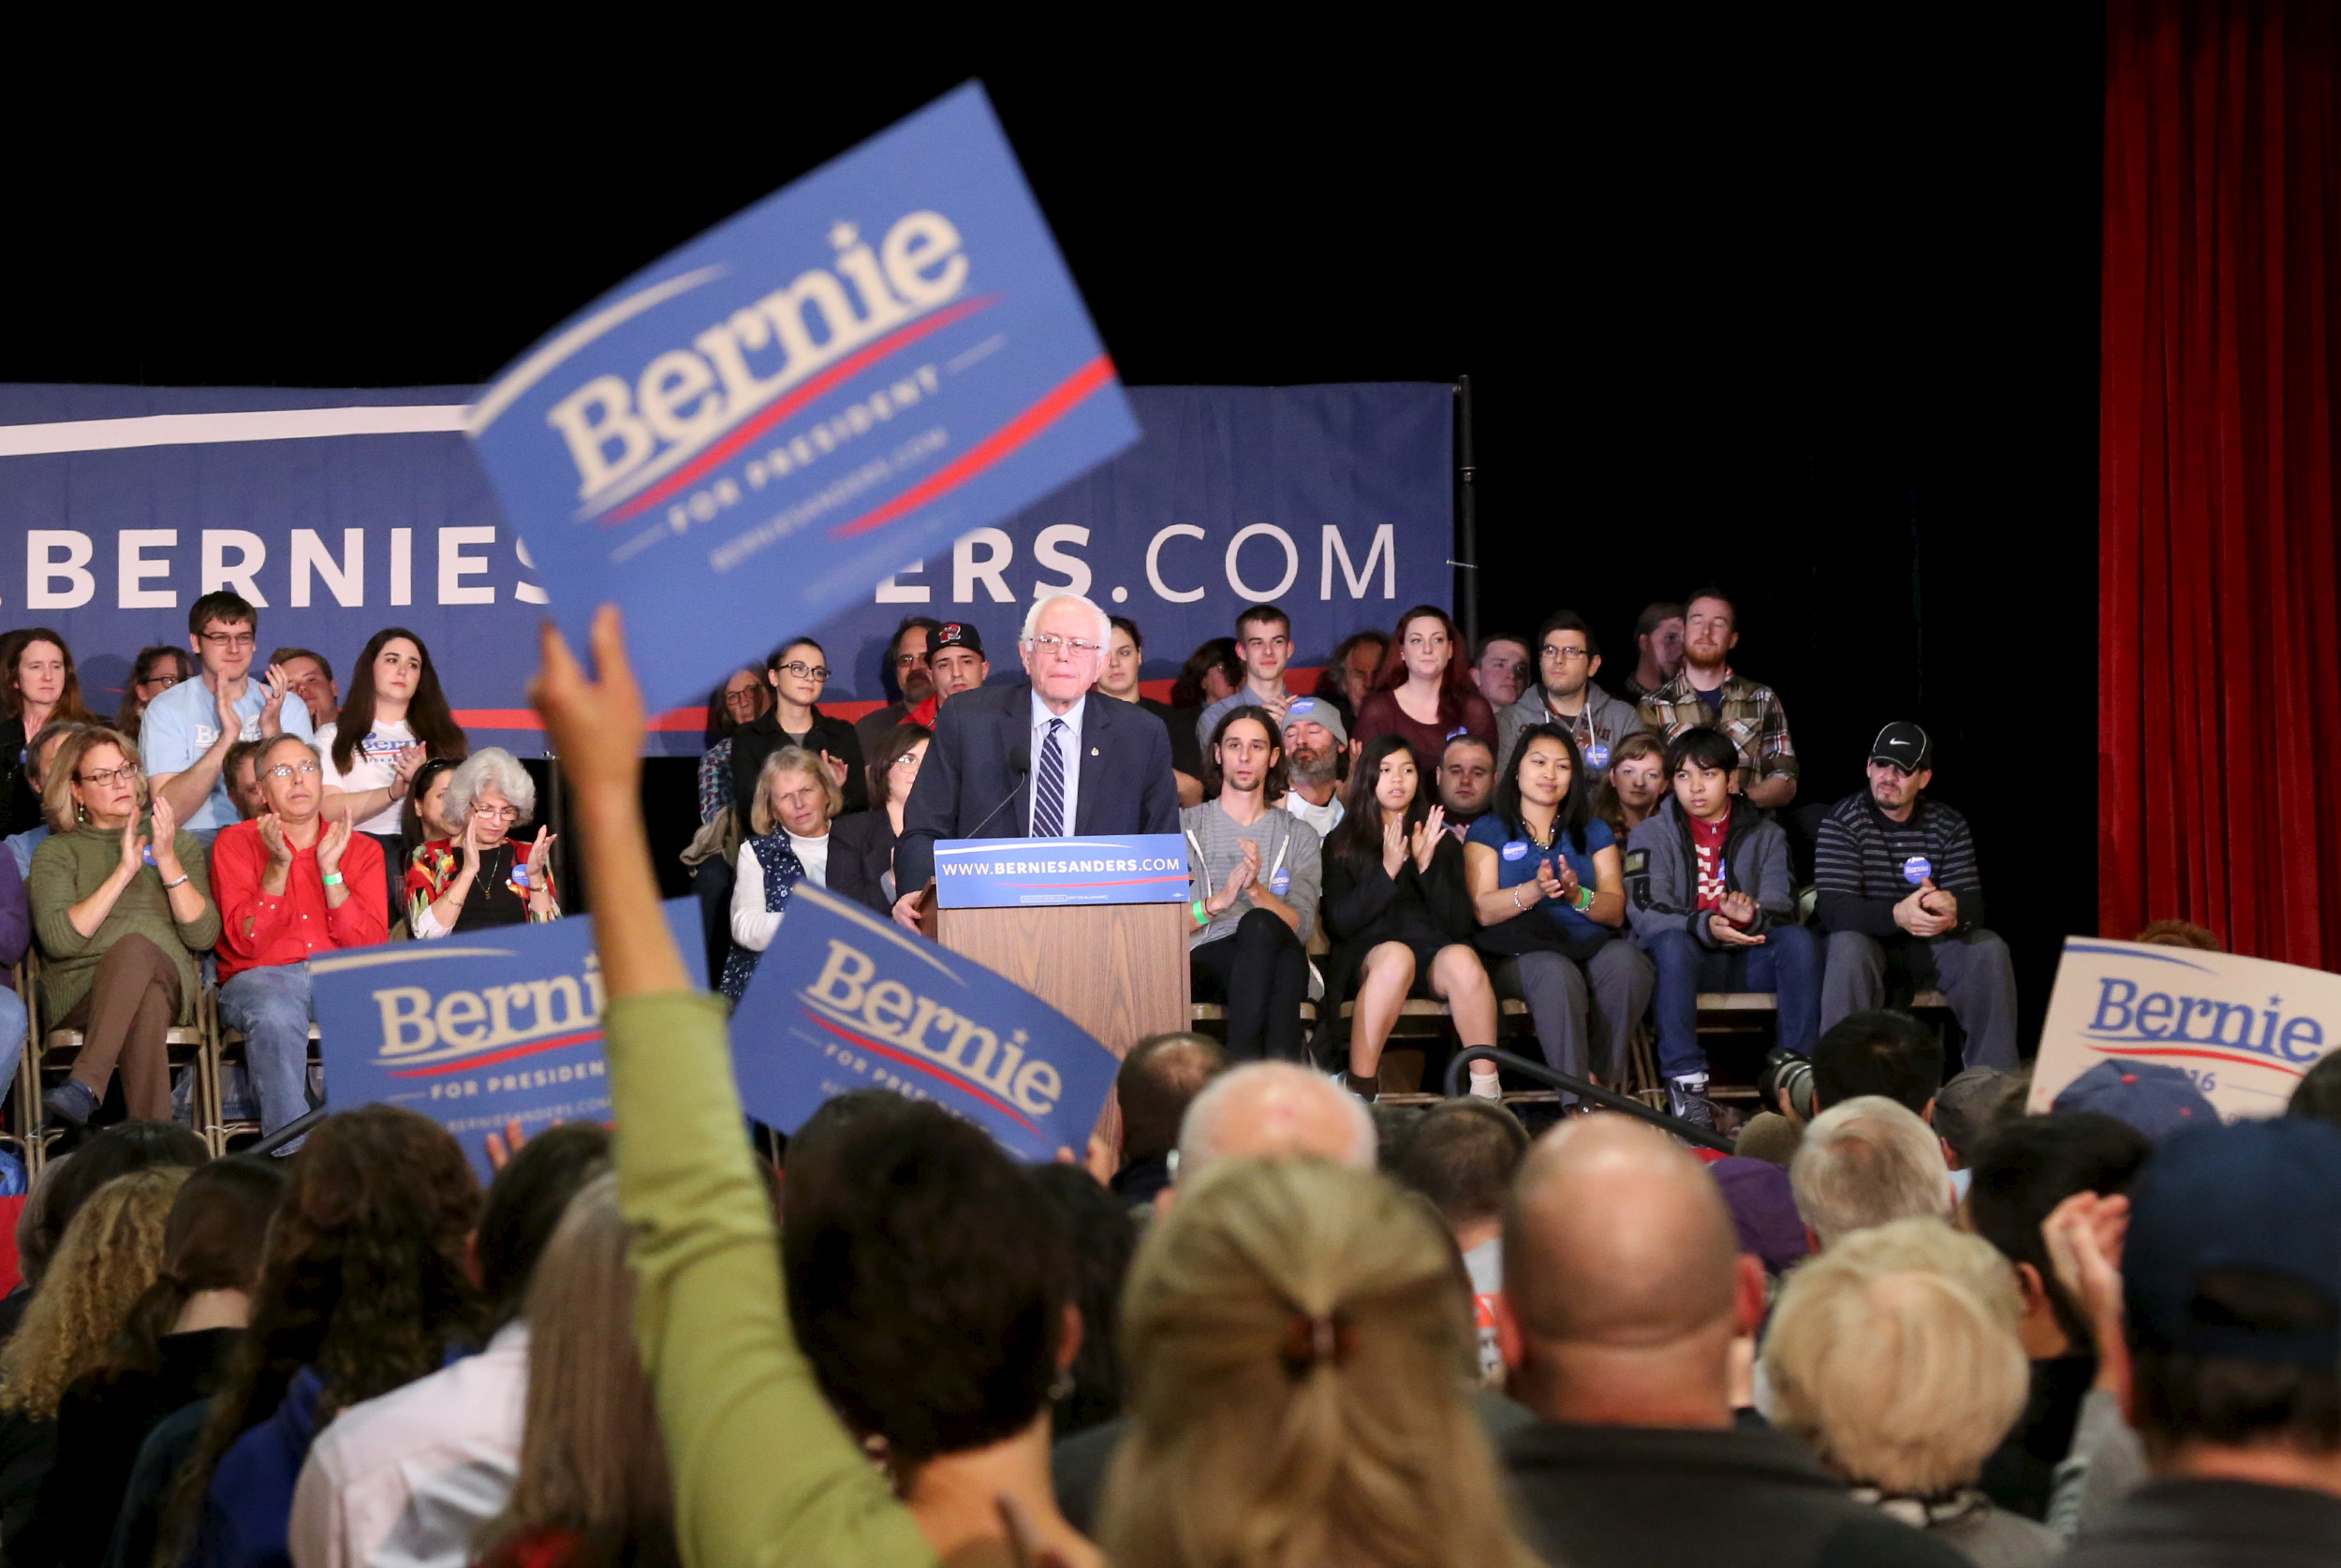 Democratic presidential candidate and Senator Bernie Sanders speaks during a campaign town hall meeting at Pinkerton Academy in Derry, New Hampshire, Oct. 30, 2015.